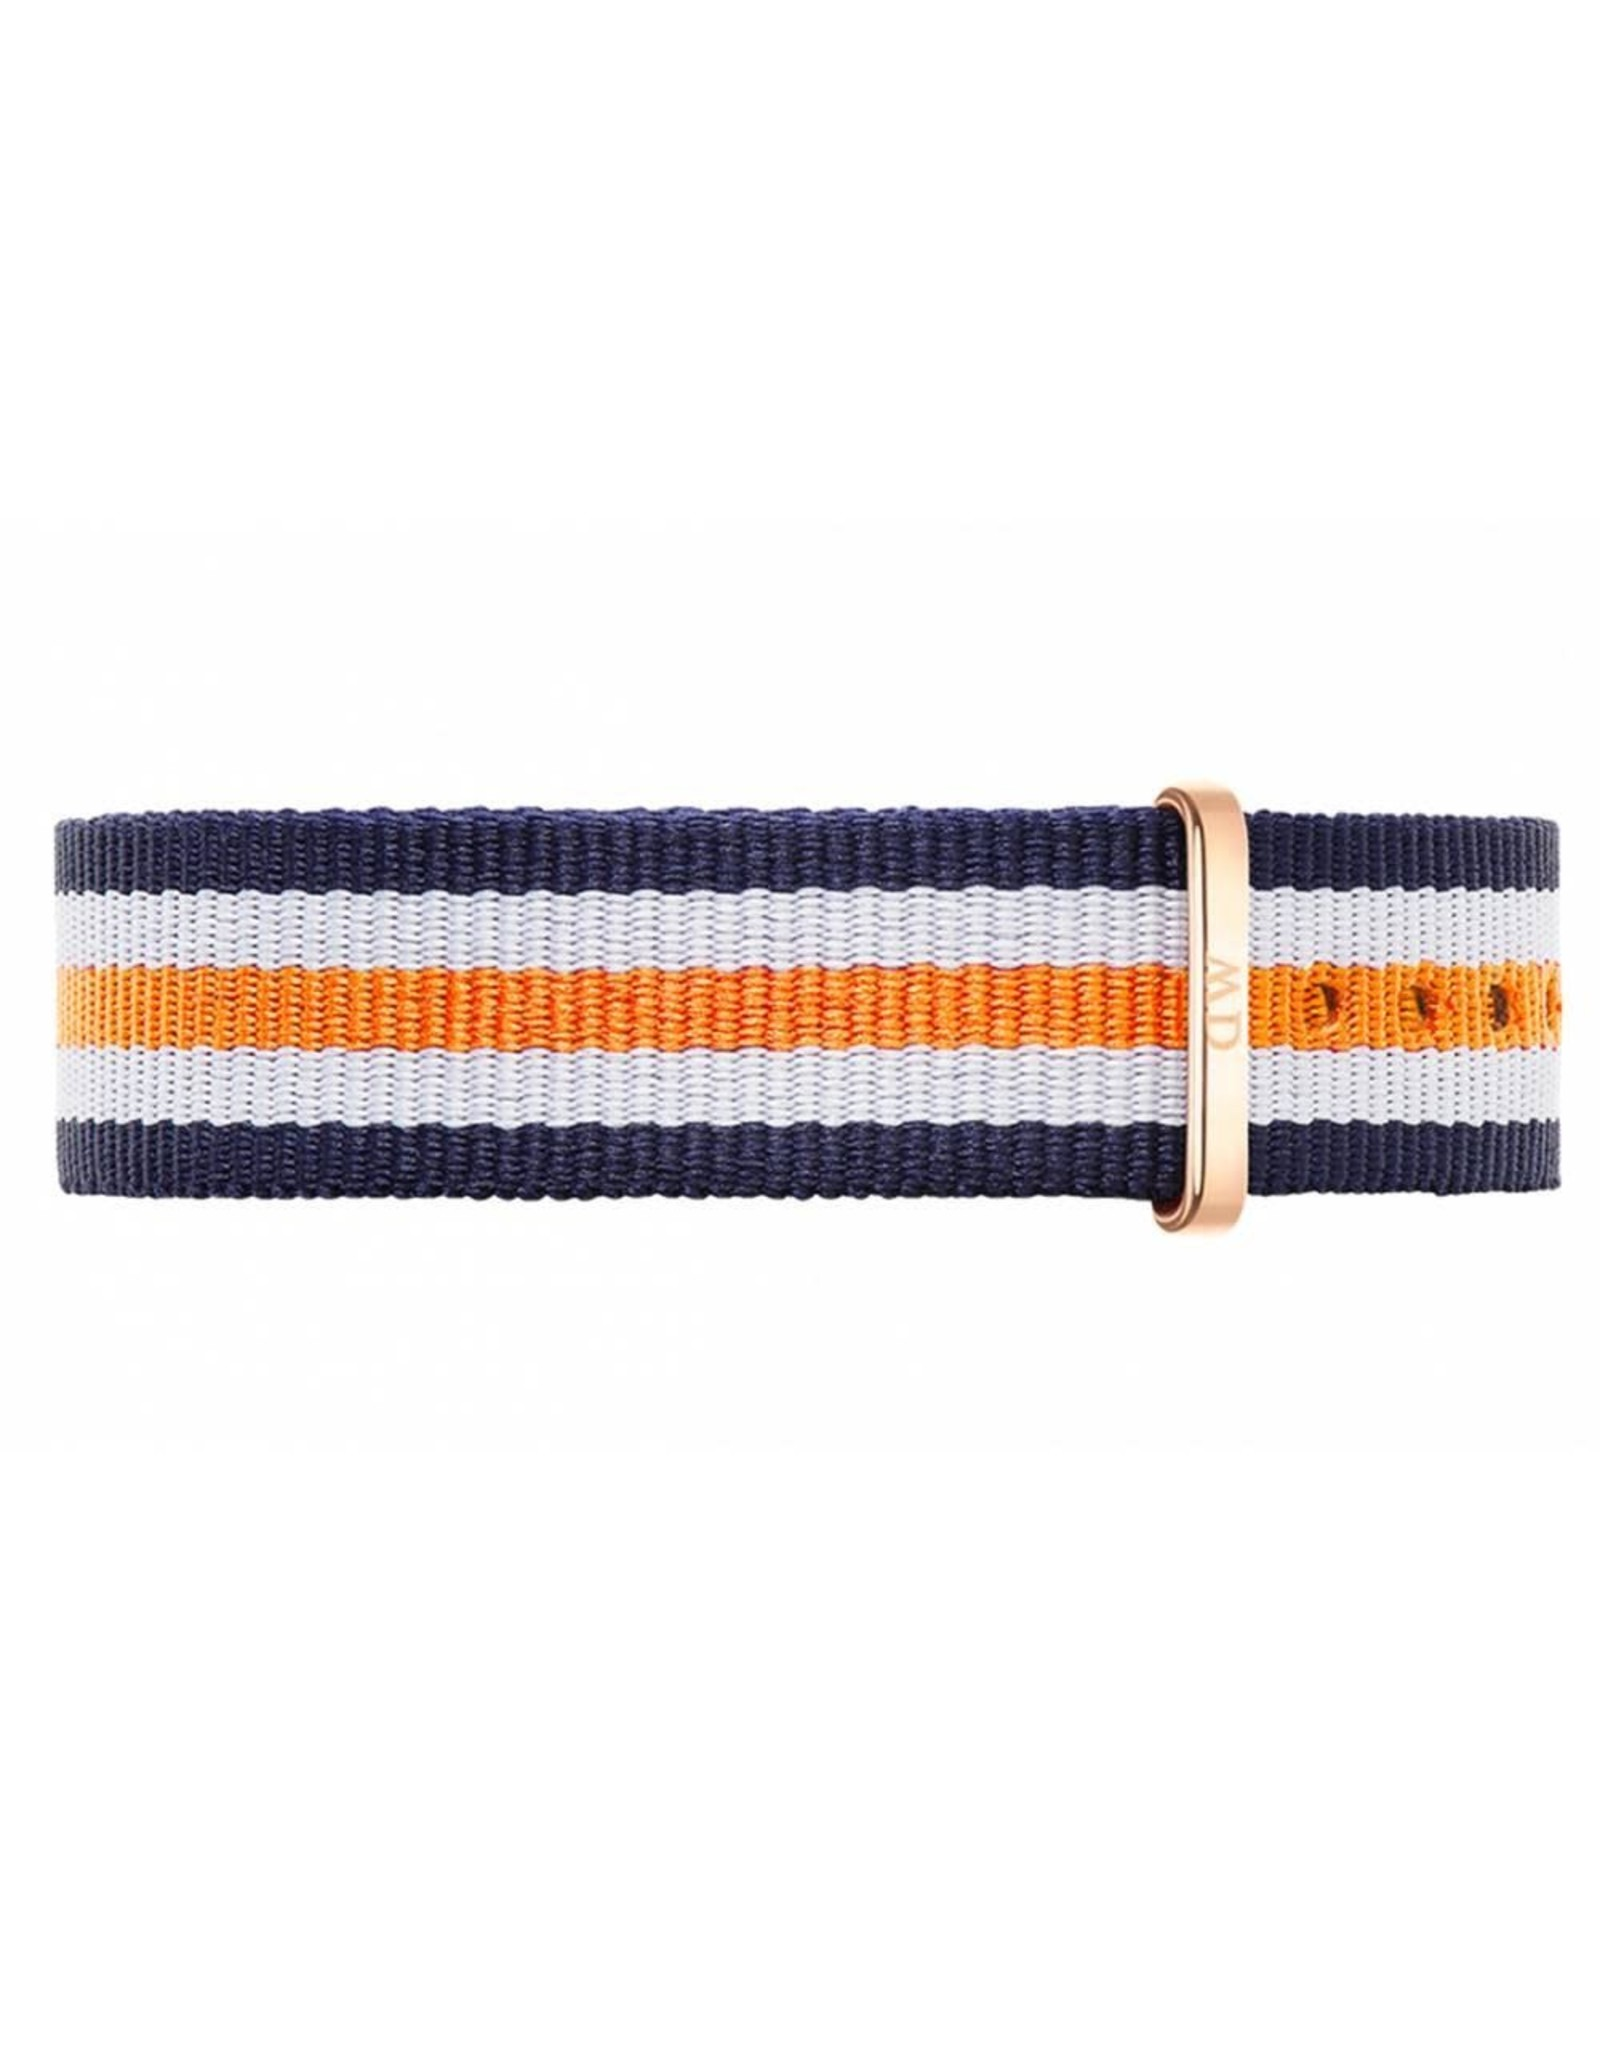 Rose Gold Southport Watch Band - 20mm